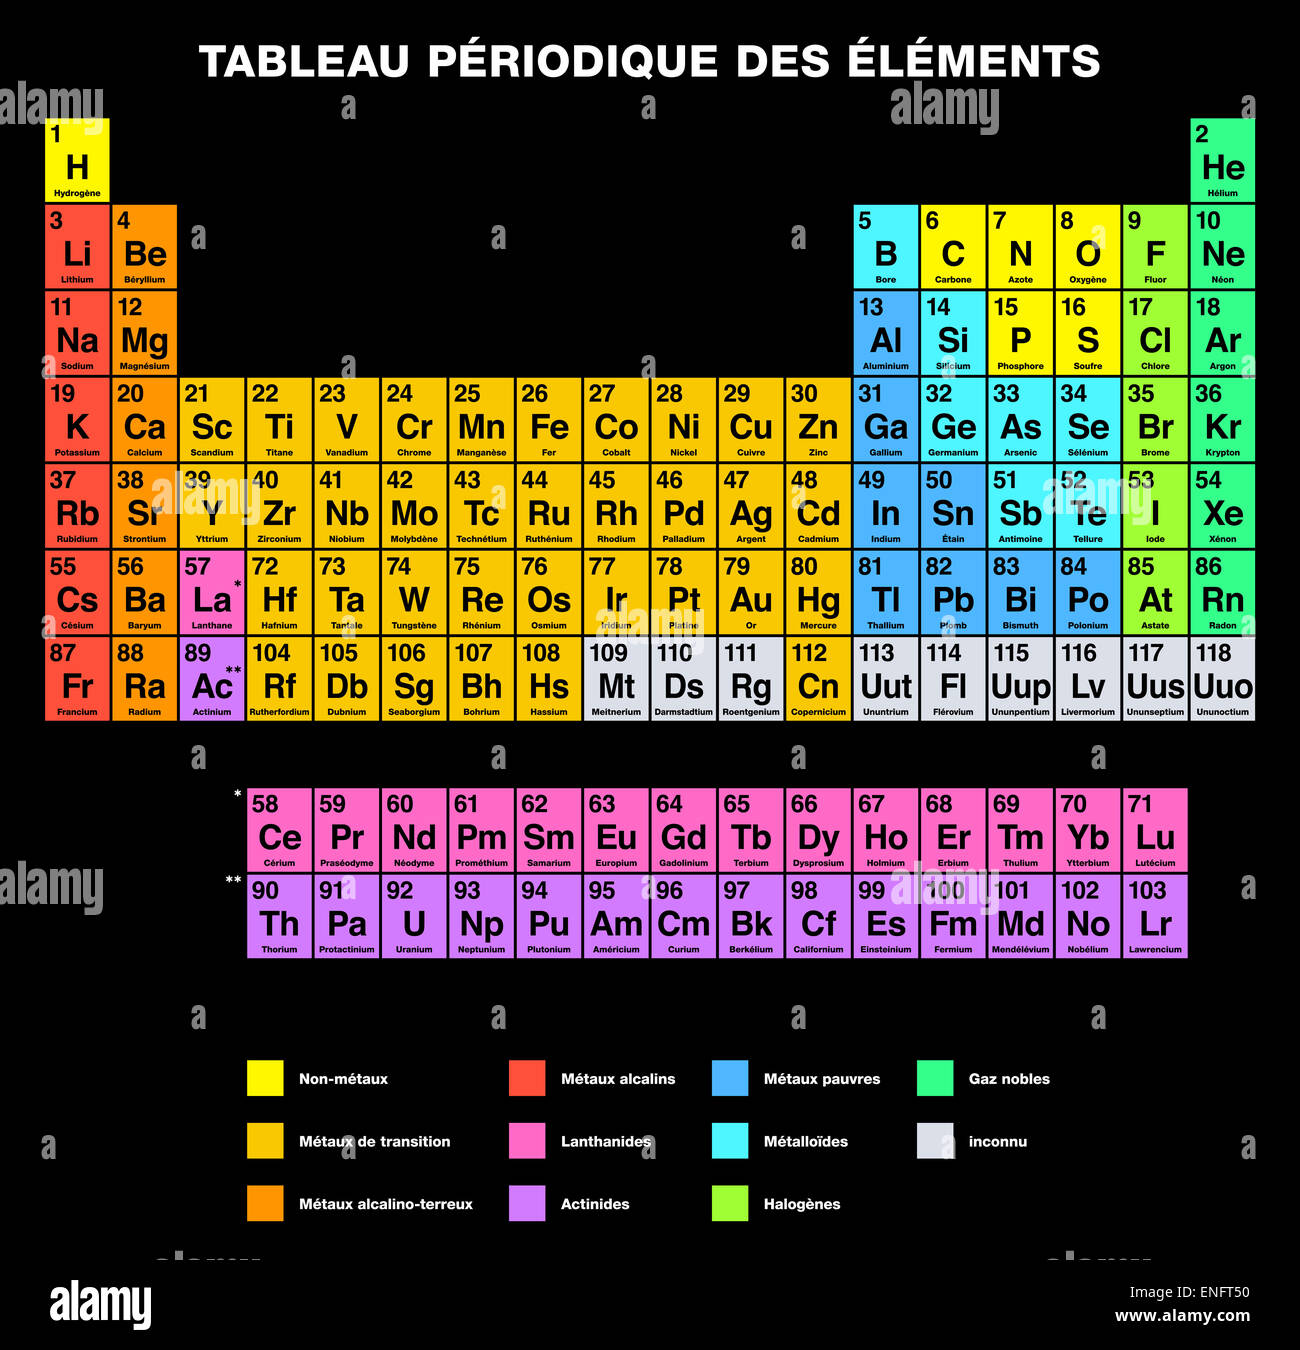 Periodic table of the elements french labeling stock photo periodic table of the elements french labeling gamestrikefo Images